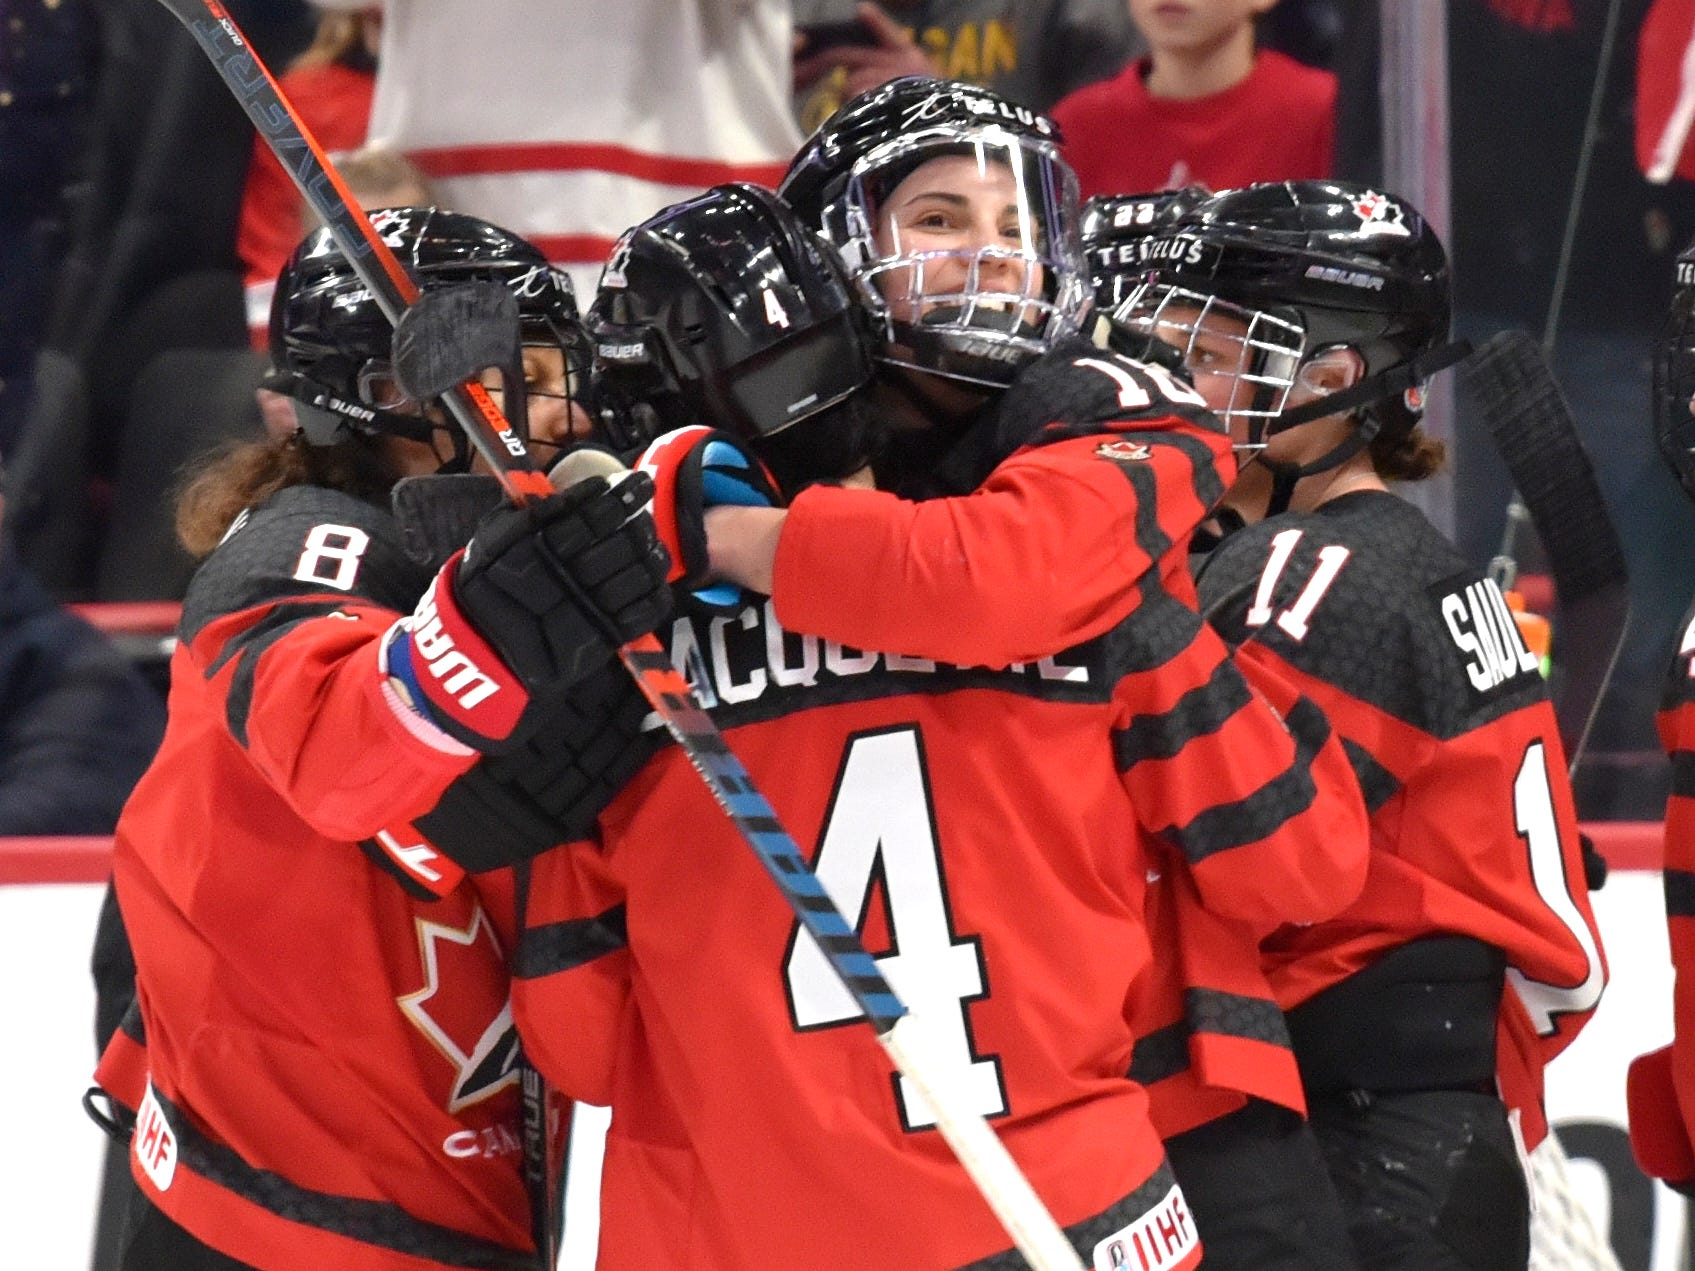 Members of Canada's National Women's Team celebrate their win over the U.S., 2-0.